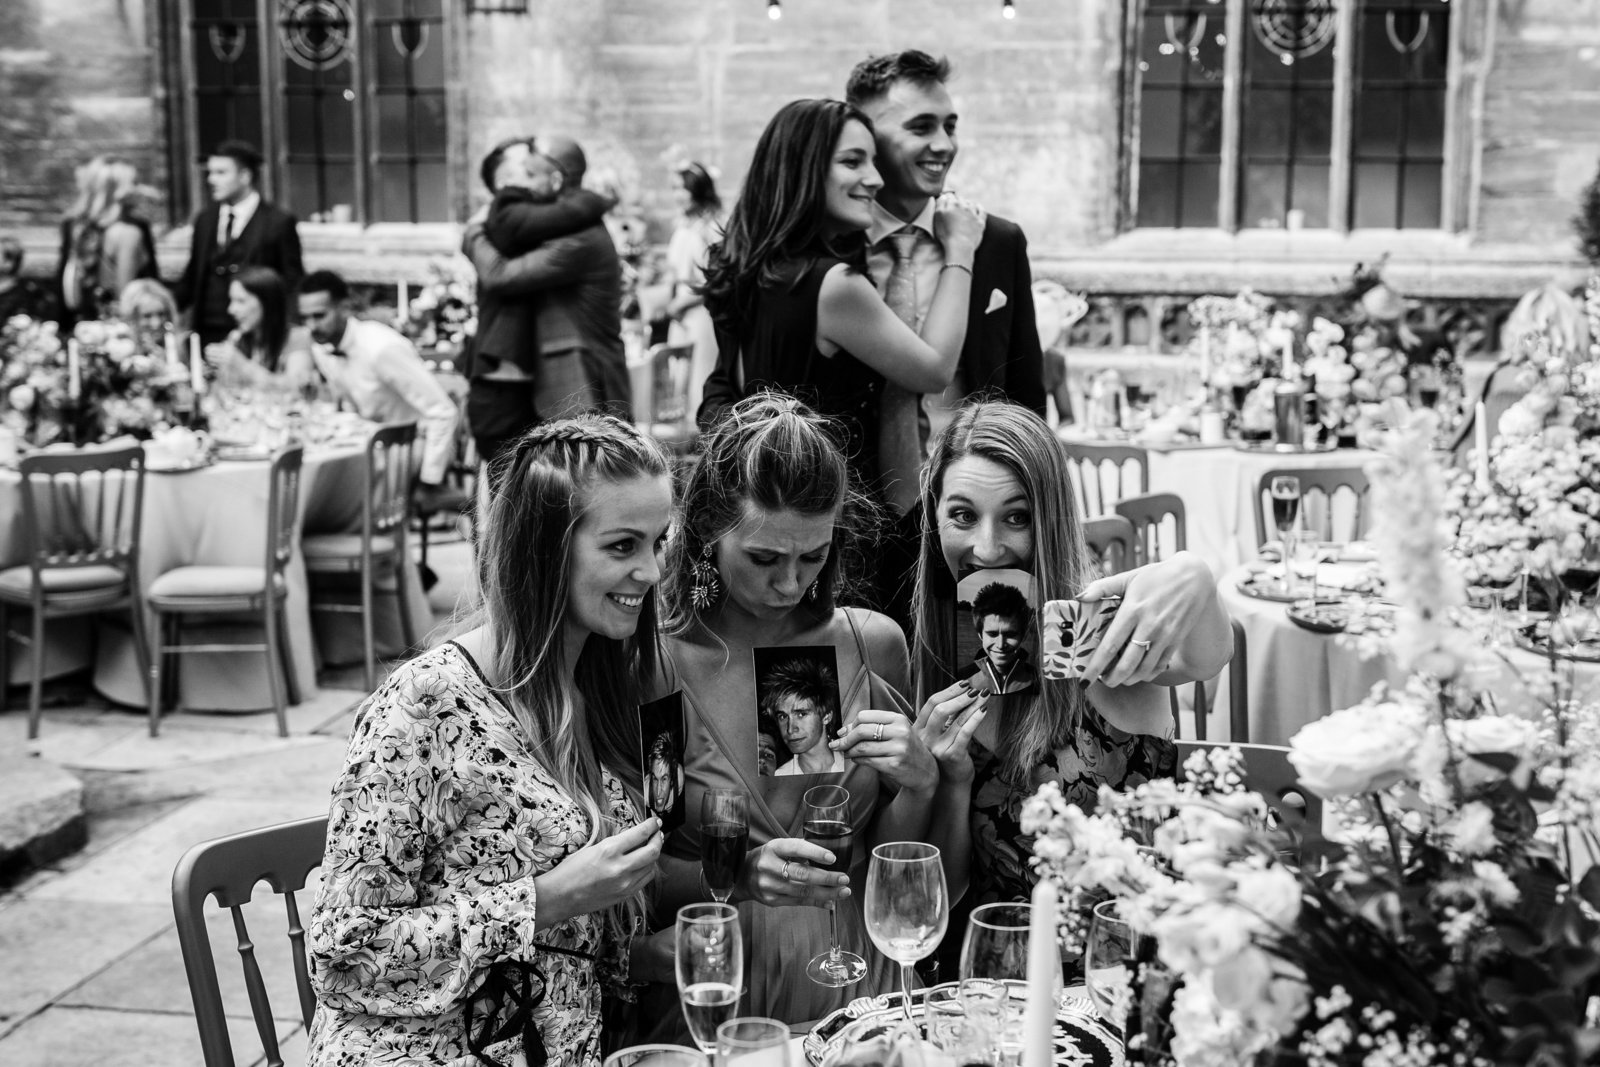 Wedding guests laugh at photo of the groom as a young man while guests hug and laugh in the background at Hengrave hall.